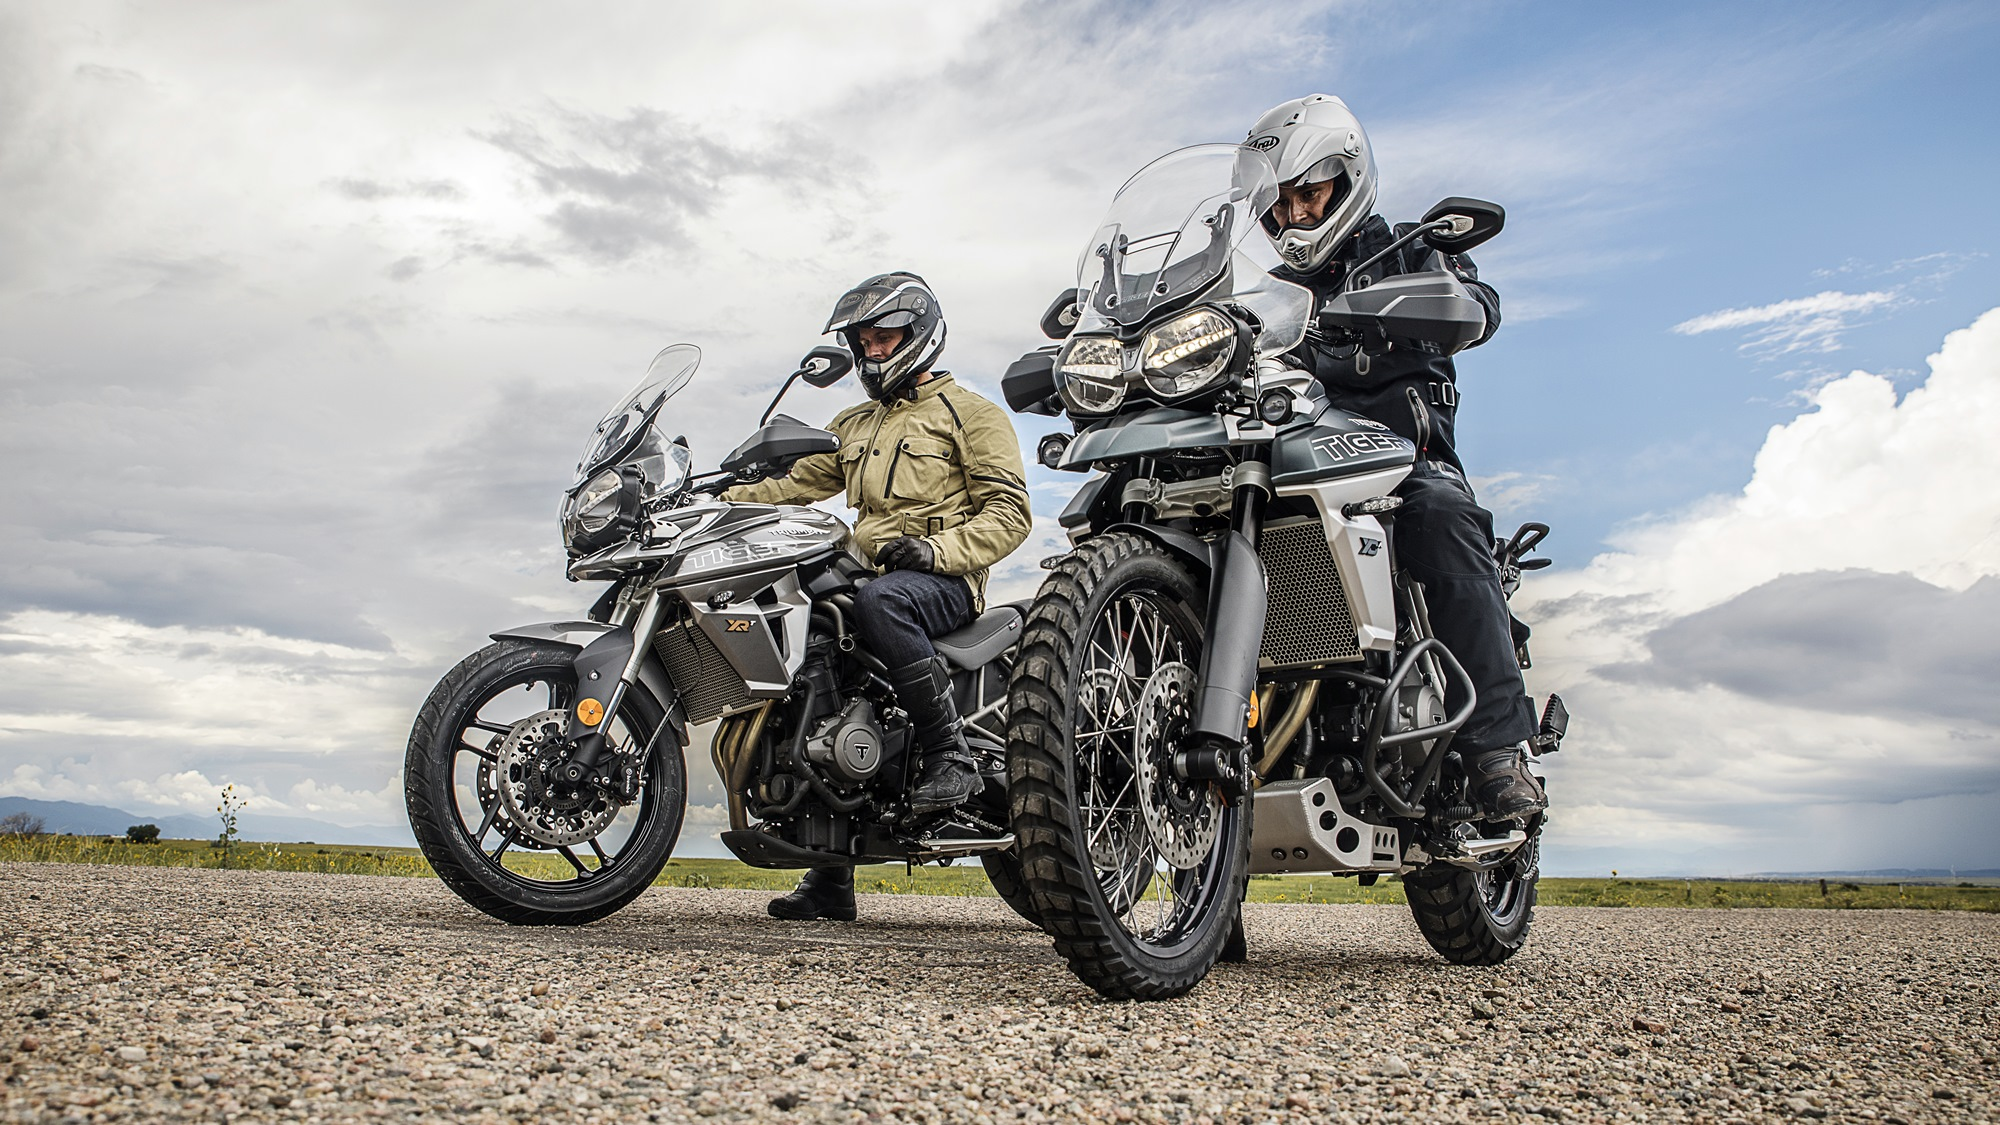 2018 Triumph Tiger 800 XC and XR